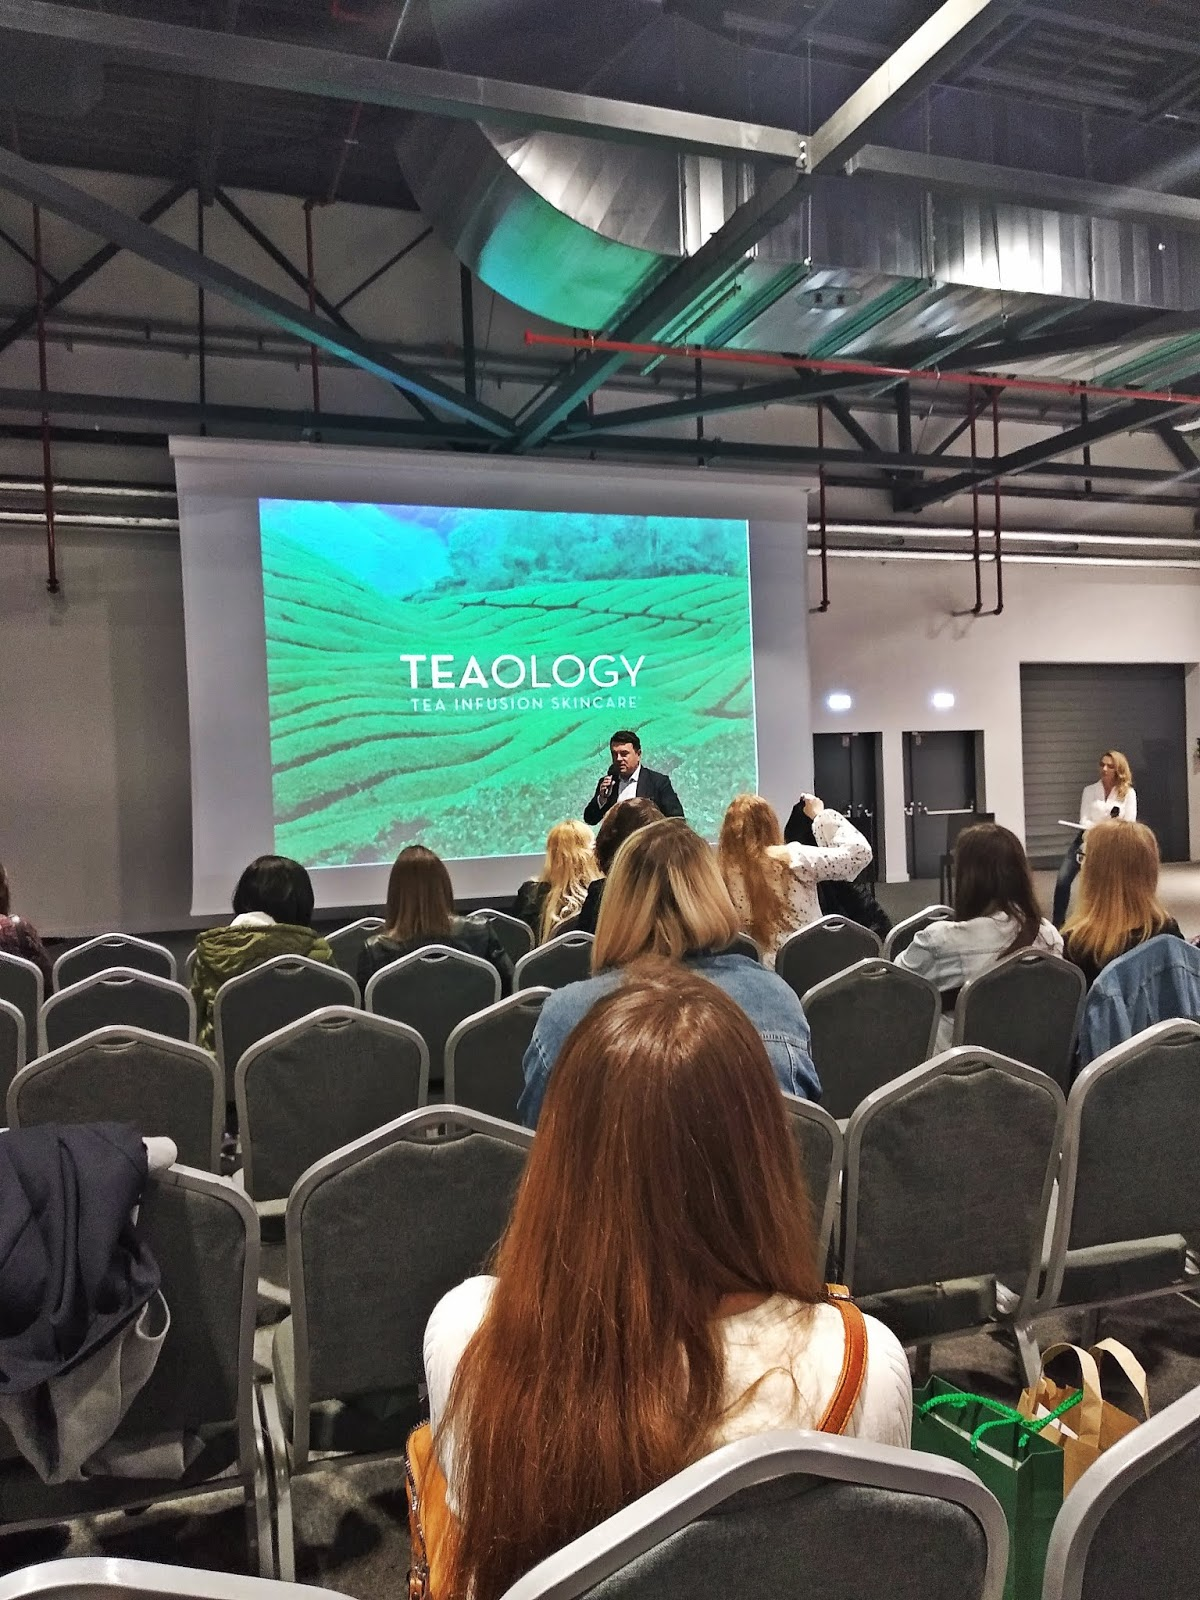 Influencers about beauty agnecja blogmedia targi beauty forum karyn blog modowy teaology